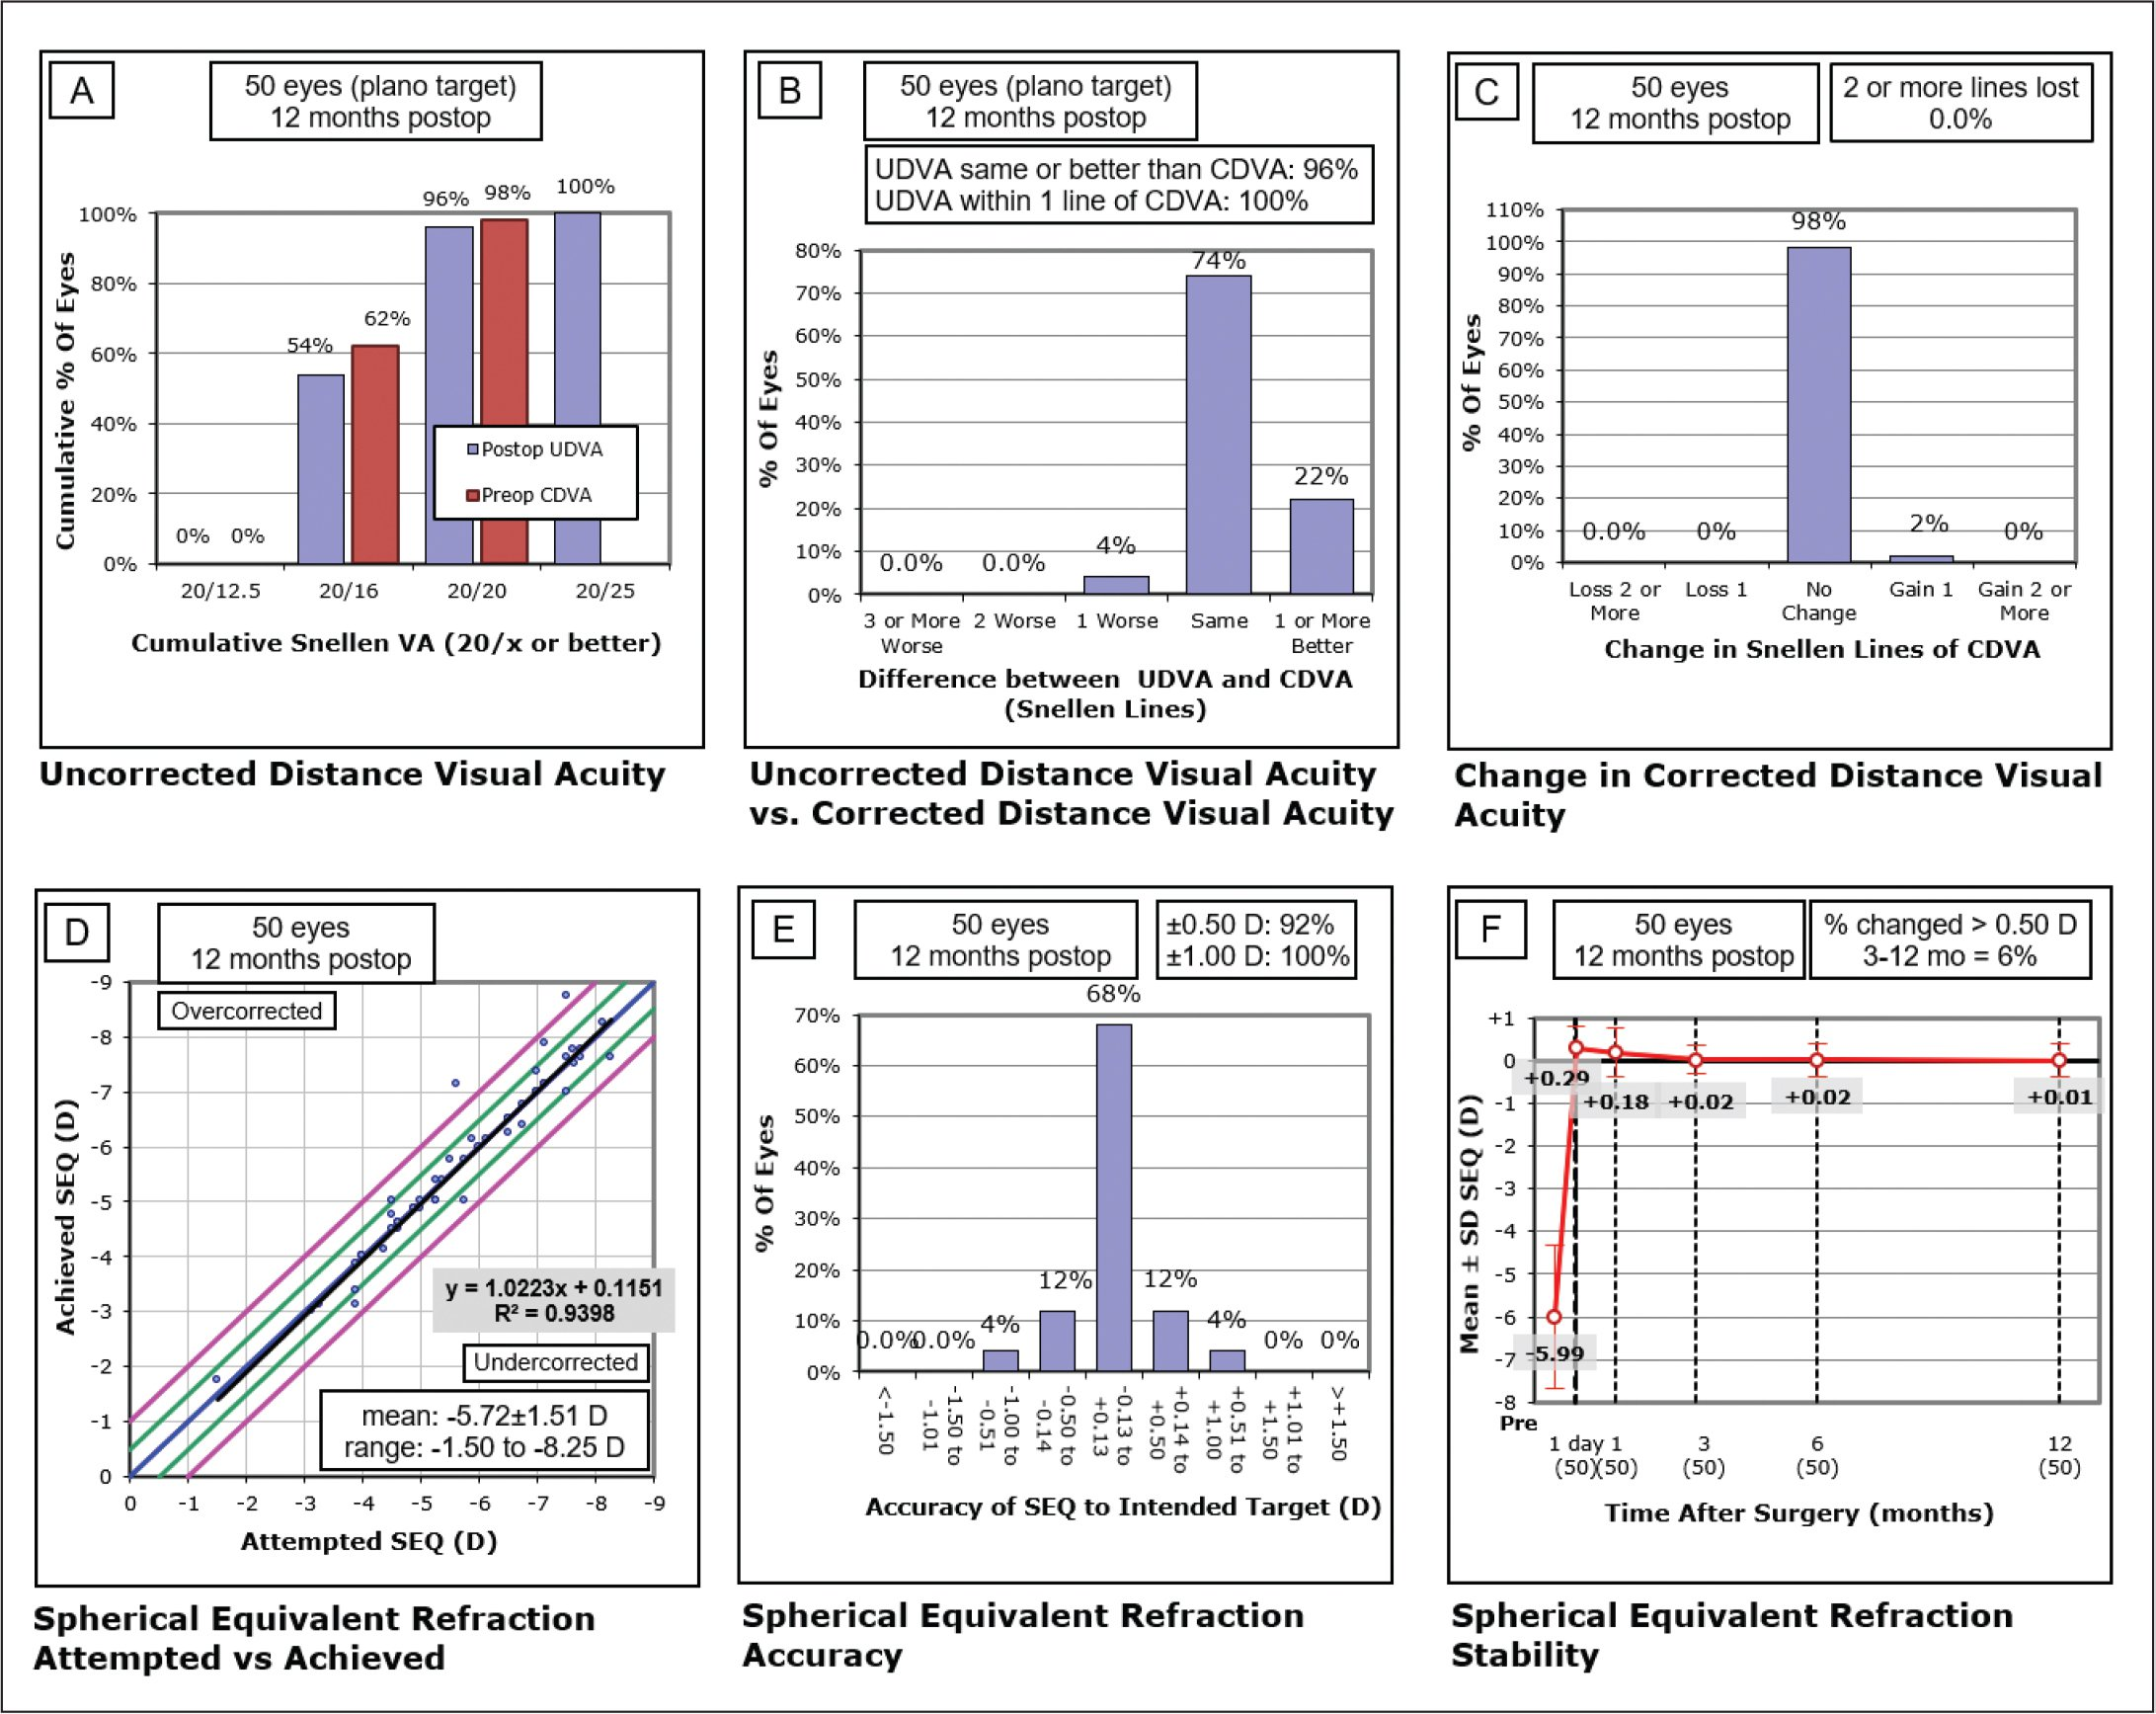 The Standard Graphs for Reporting Refractive Surgery of eyes that underwent uneventful surgeries. (A). Twelve-month postoperative cumulative percentage of eyes attaining specified cumulative levels of uncorrected distance visual acuity (UDVA); all eyes showing emmetropia as the target refraction. (B). Percentage of eyes with postoperative UDVA equal to or better than the preoperative corrected distance visual acuity (CDVA). (C) Gain and loss of CDVA. (D) Attempted spherical equivalent (SE) refractive change plotted against the achieved SE refractive change. (E) Percentage of eyes attaining specified differences in attempted versus achieved correction. (F) Stability of manifest spherical equivalent. D = diopters